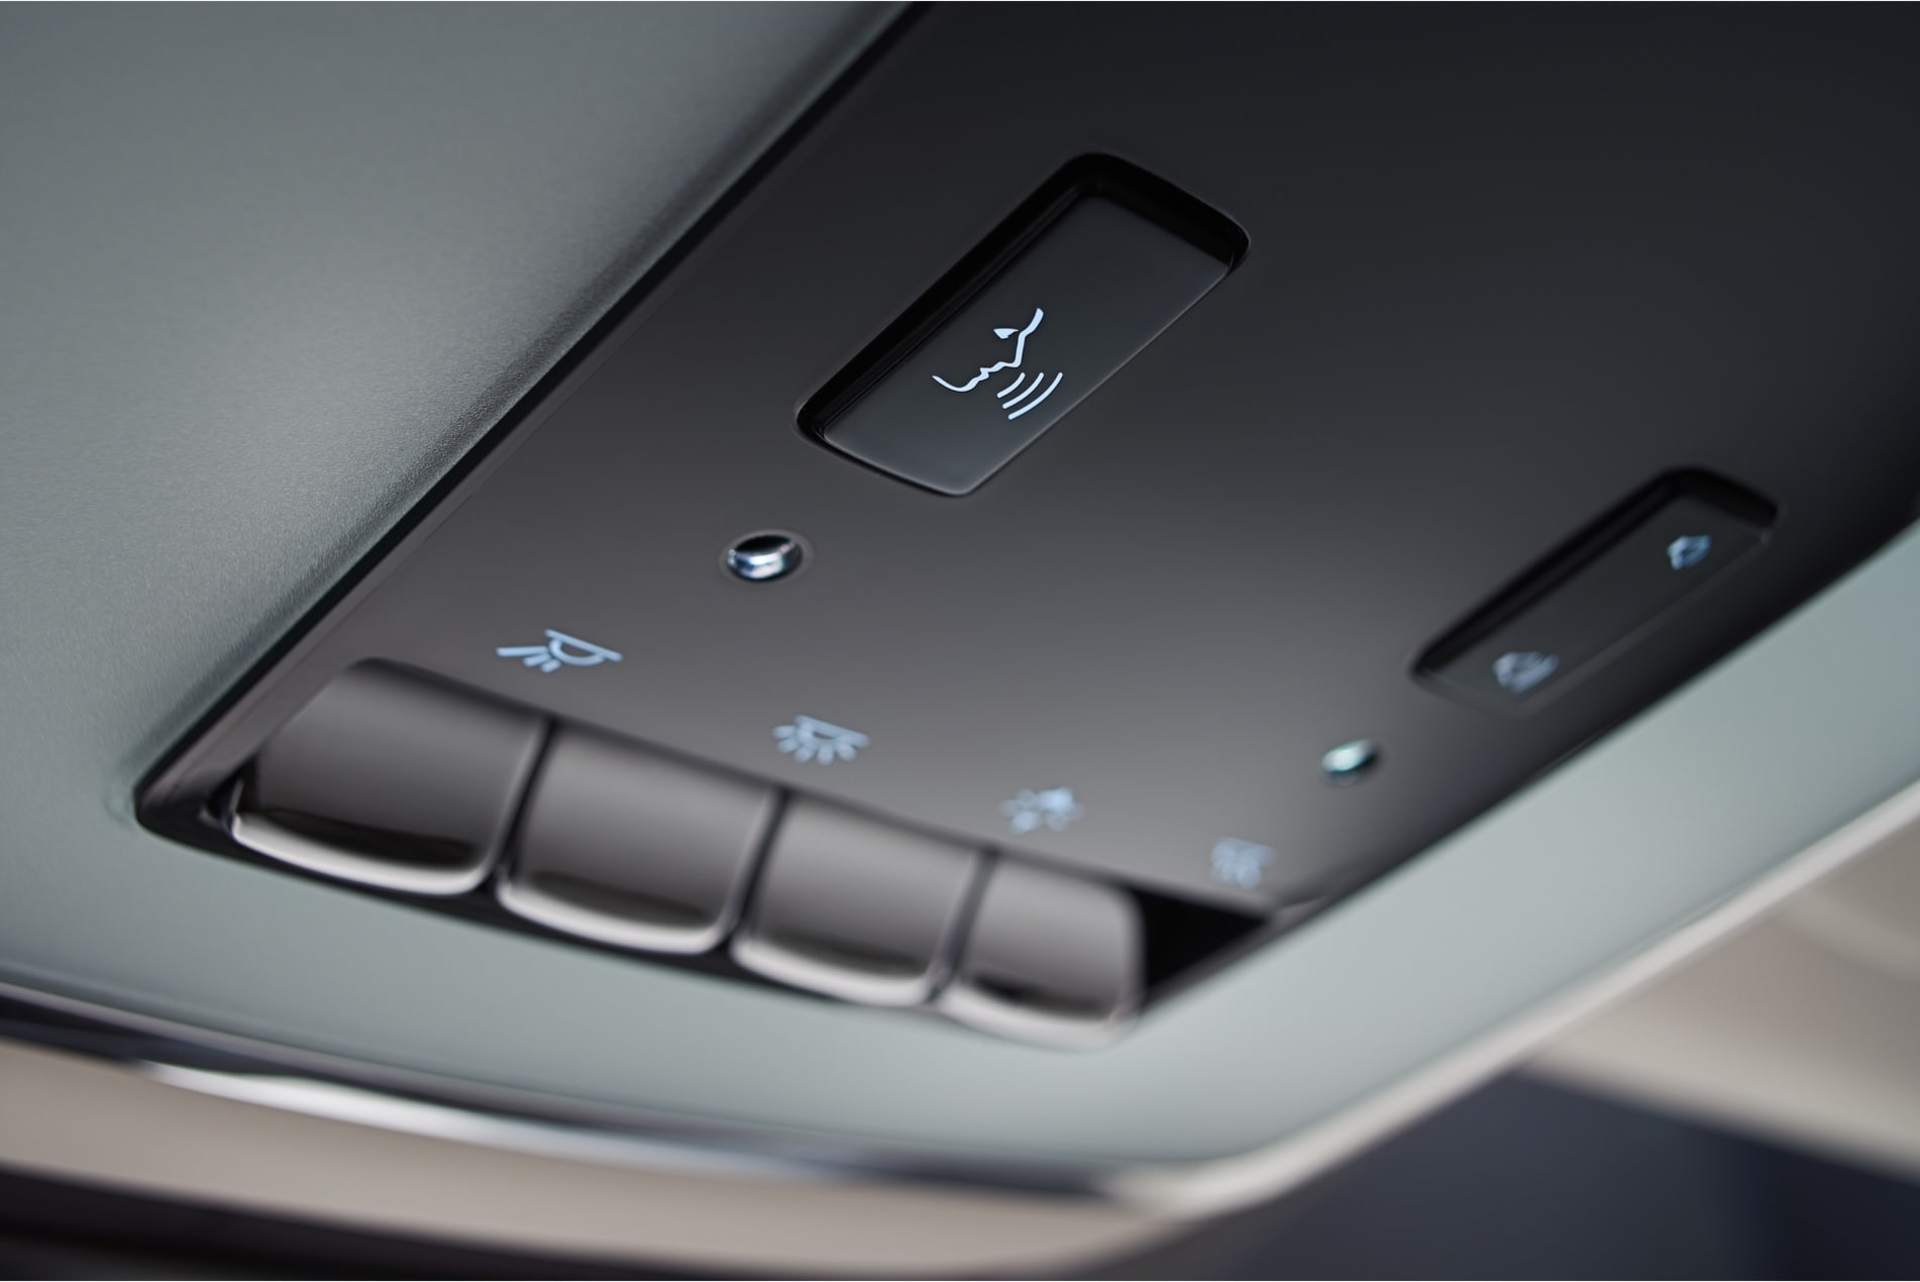 The backseat commands, used to enable communication with the driver, adjust the volume and lighting